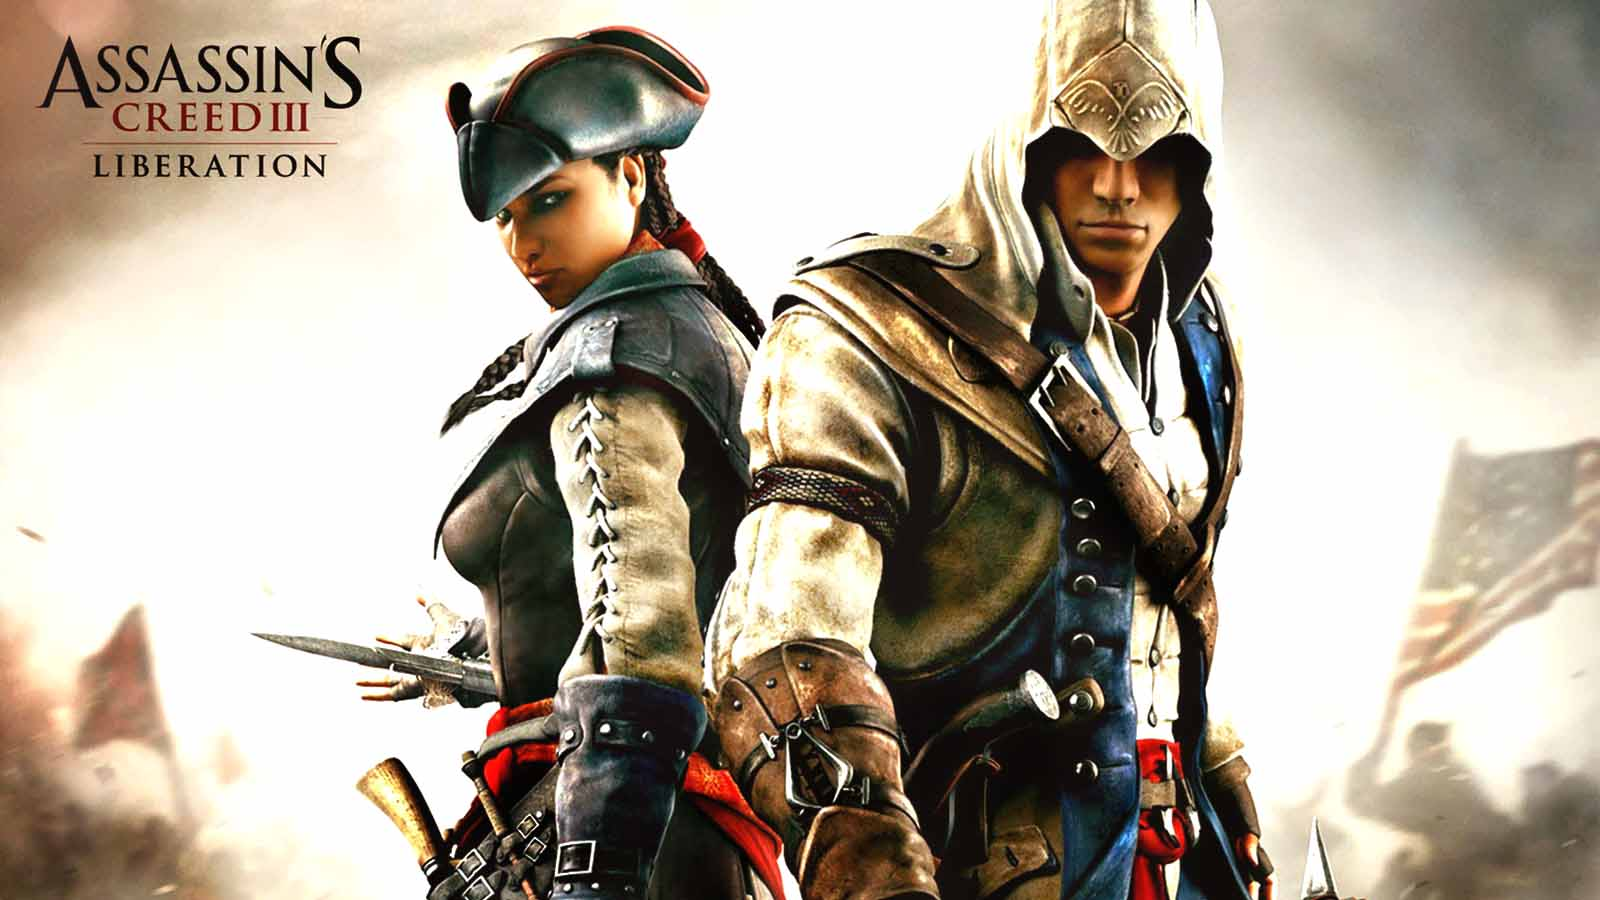 Assassin s creed liberation hd pc game free download top games